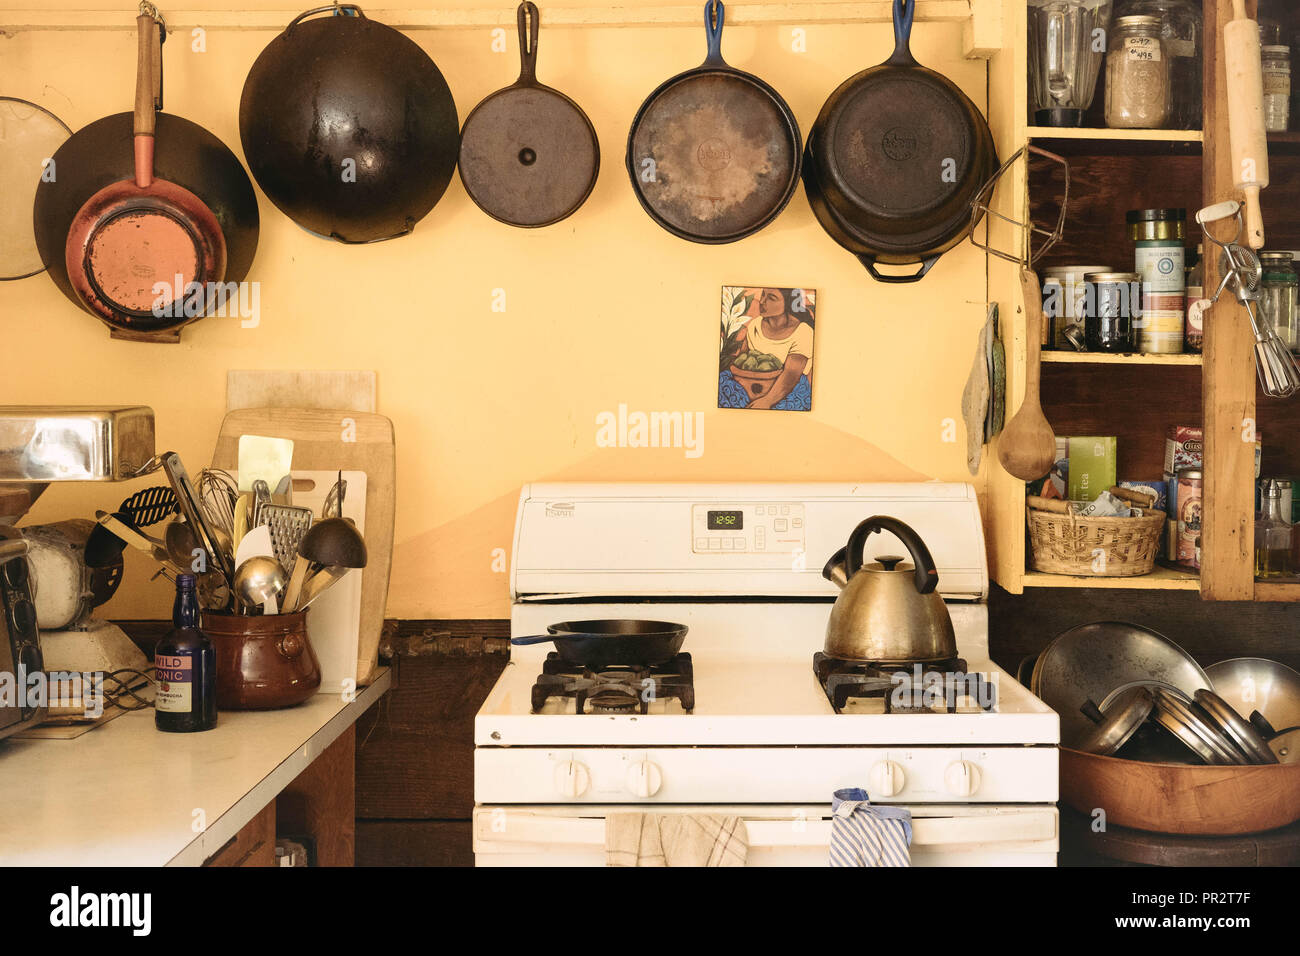 Cast iron cooking pans hanging over a white stove in an old farmhouse kitchen. Kitchen utensils are on each side. - Stock Image